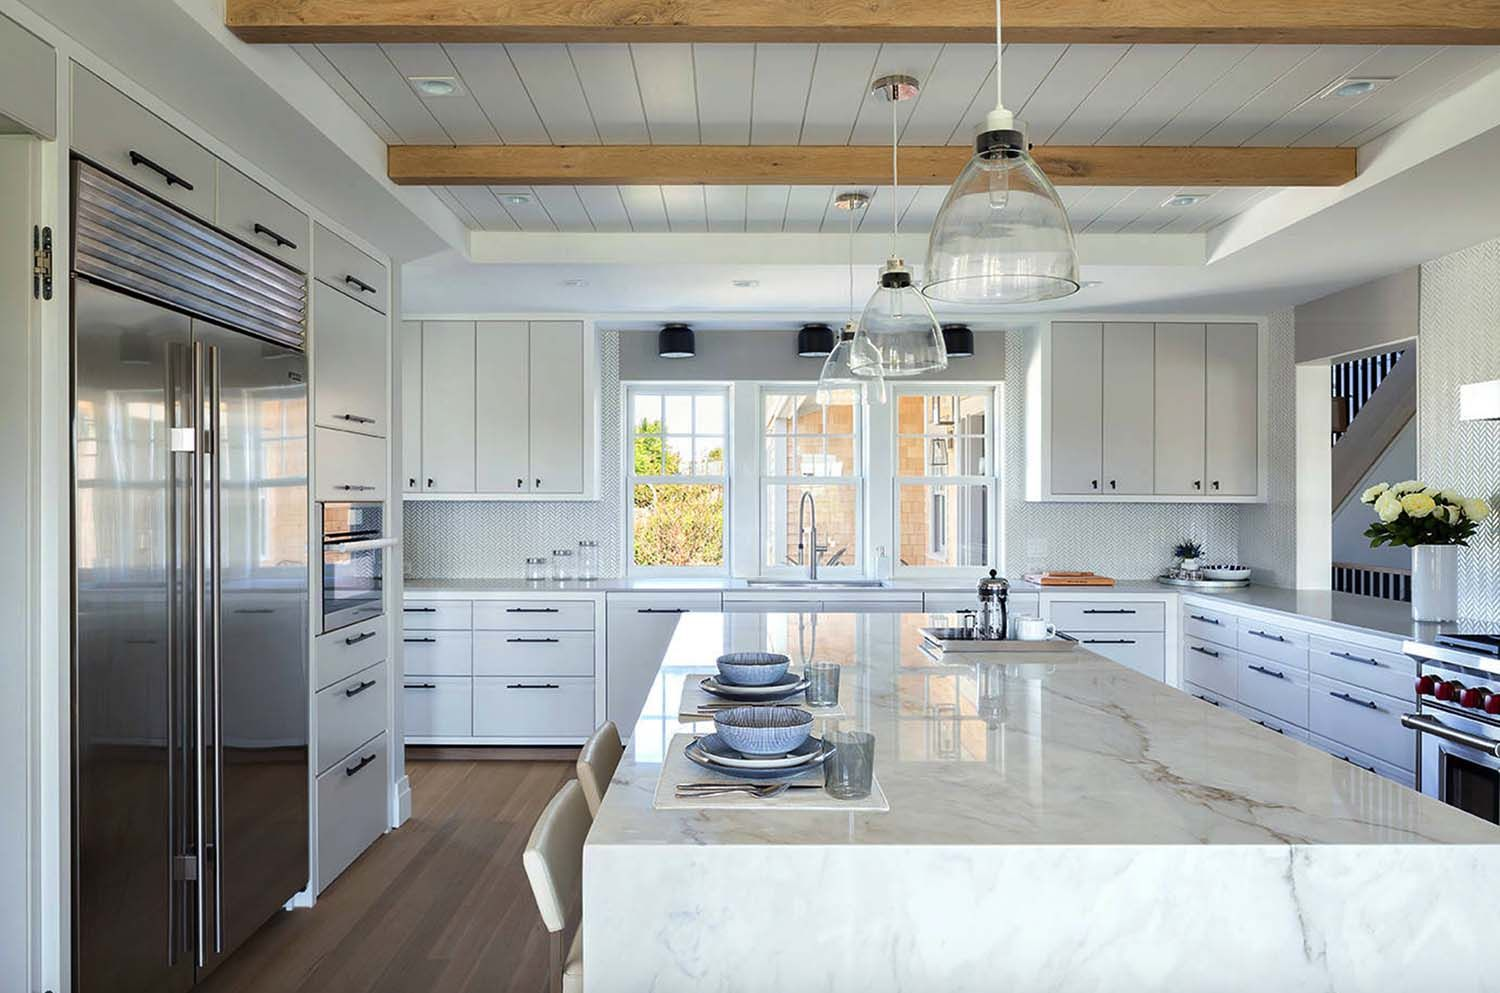 style Nantucket beach home infused with nautical touches